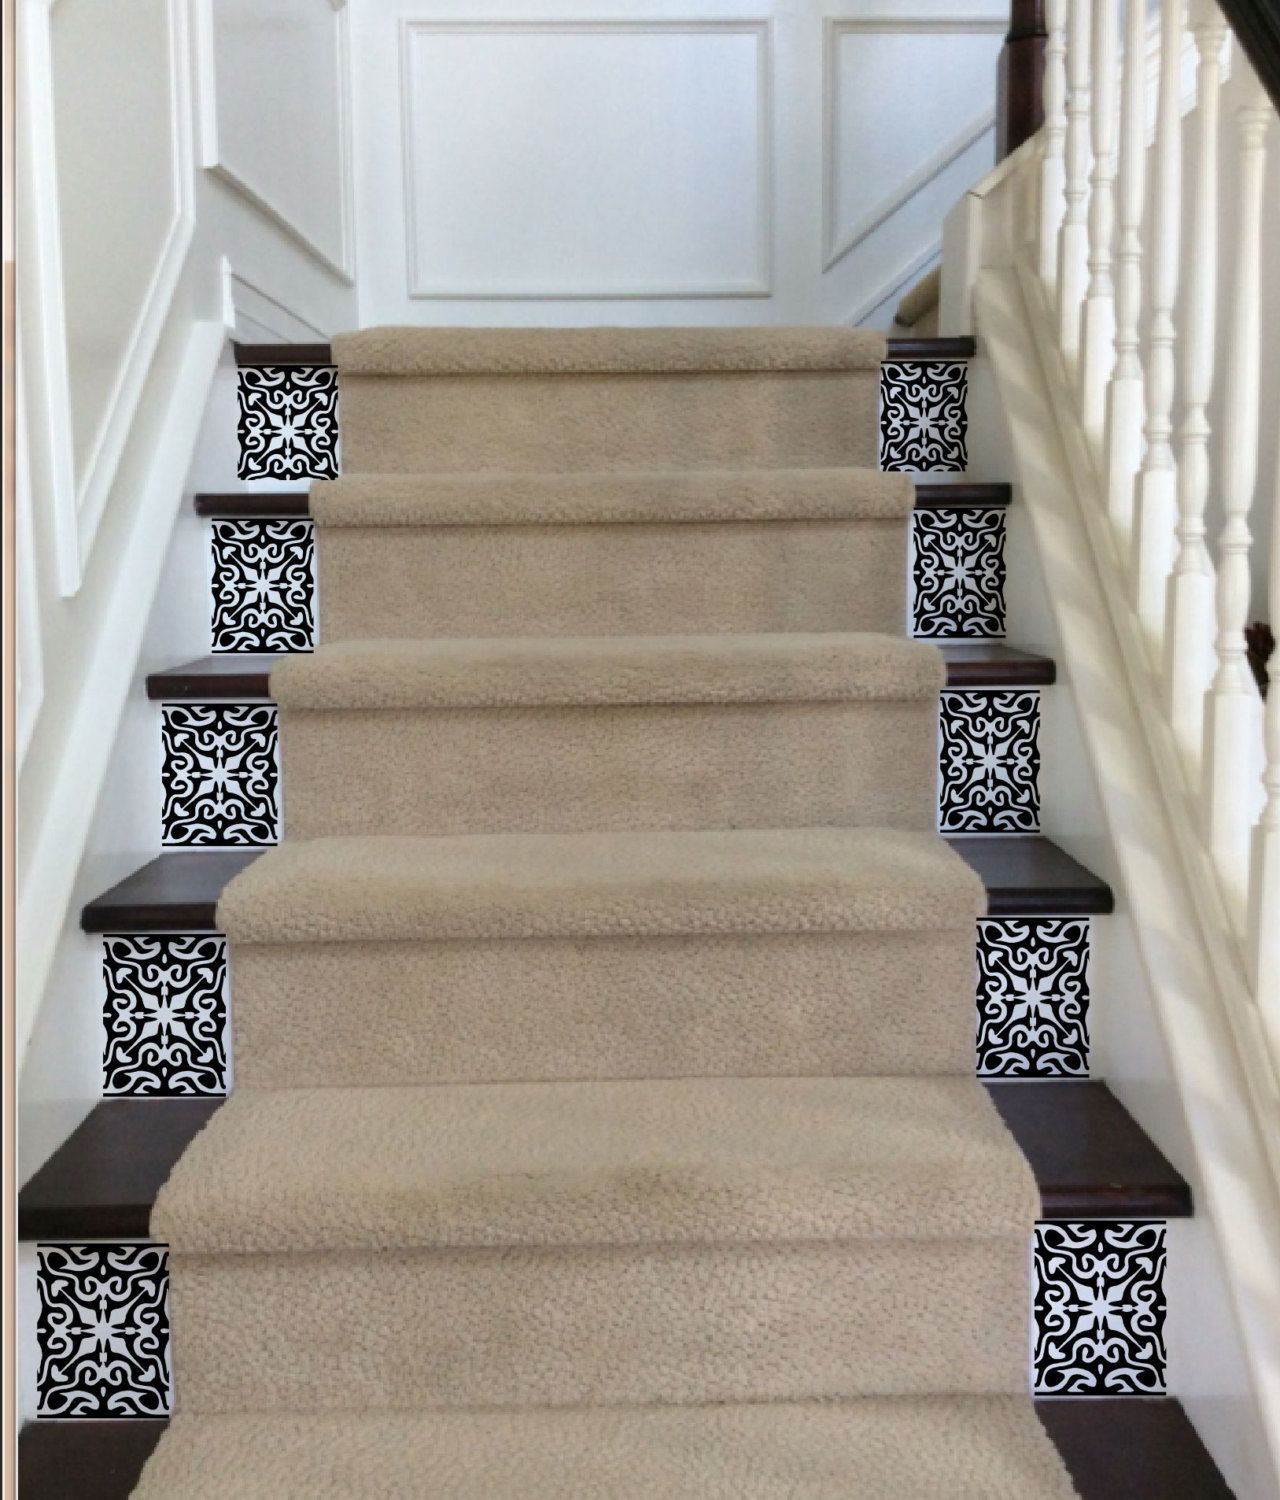 Best Ornate Vinyl Tile Decals For Carpeted Stairs Decals For 400 x 300